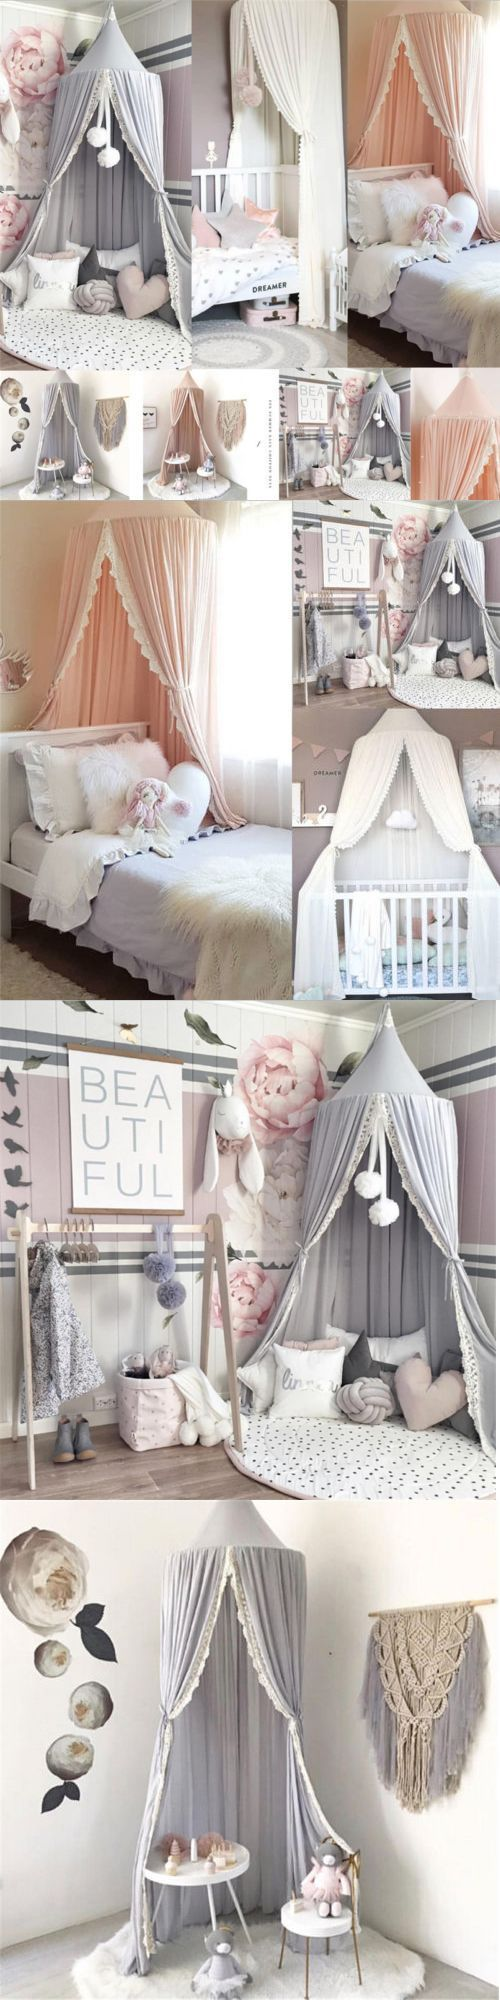 Canopies and Netting 48090: Child Baby Bed Canopy Netting Bedcover Mosquito Net …,  #baby #…